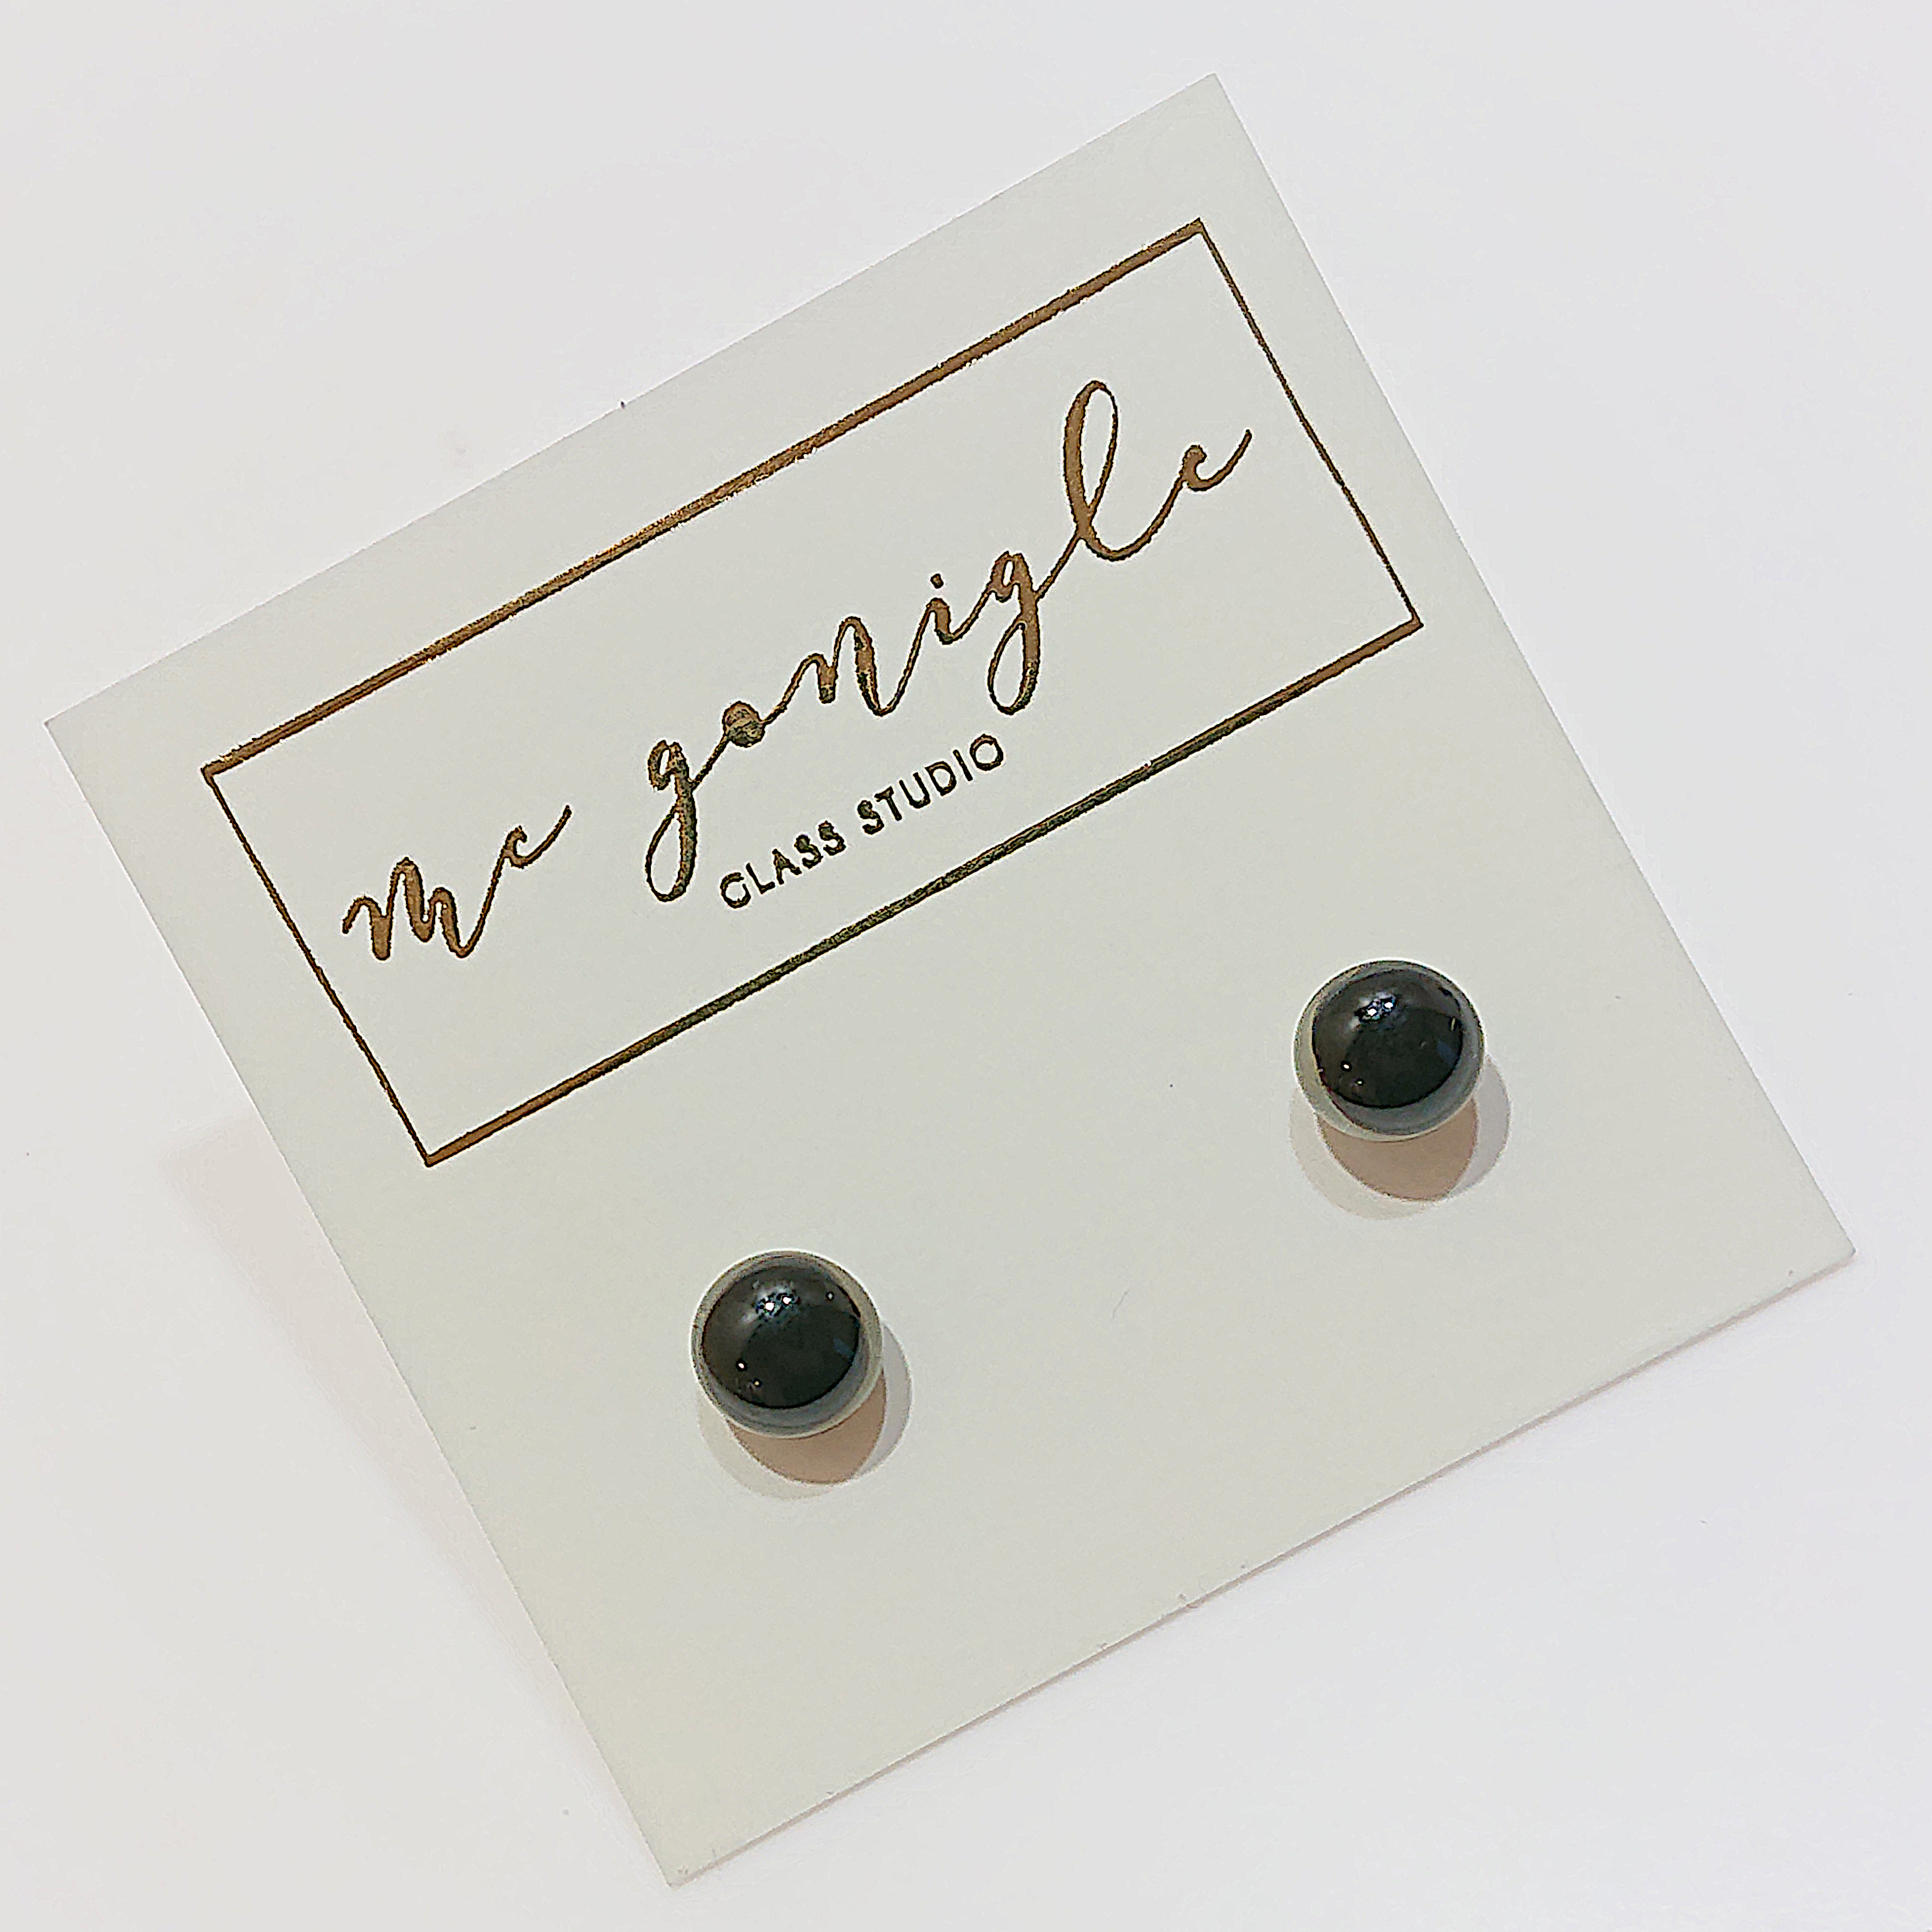 Black Stud Earring